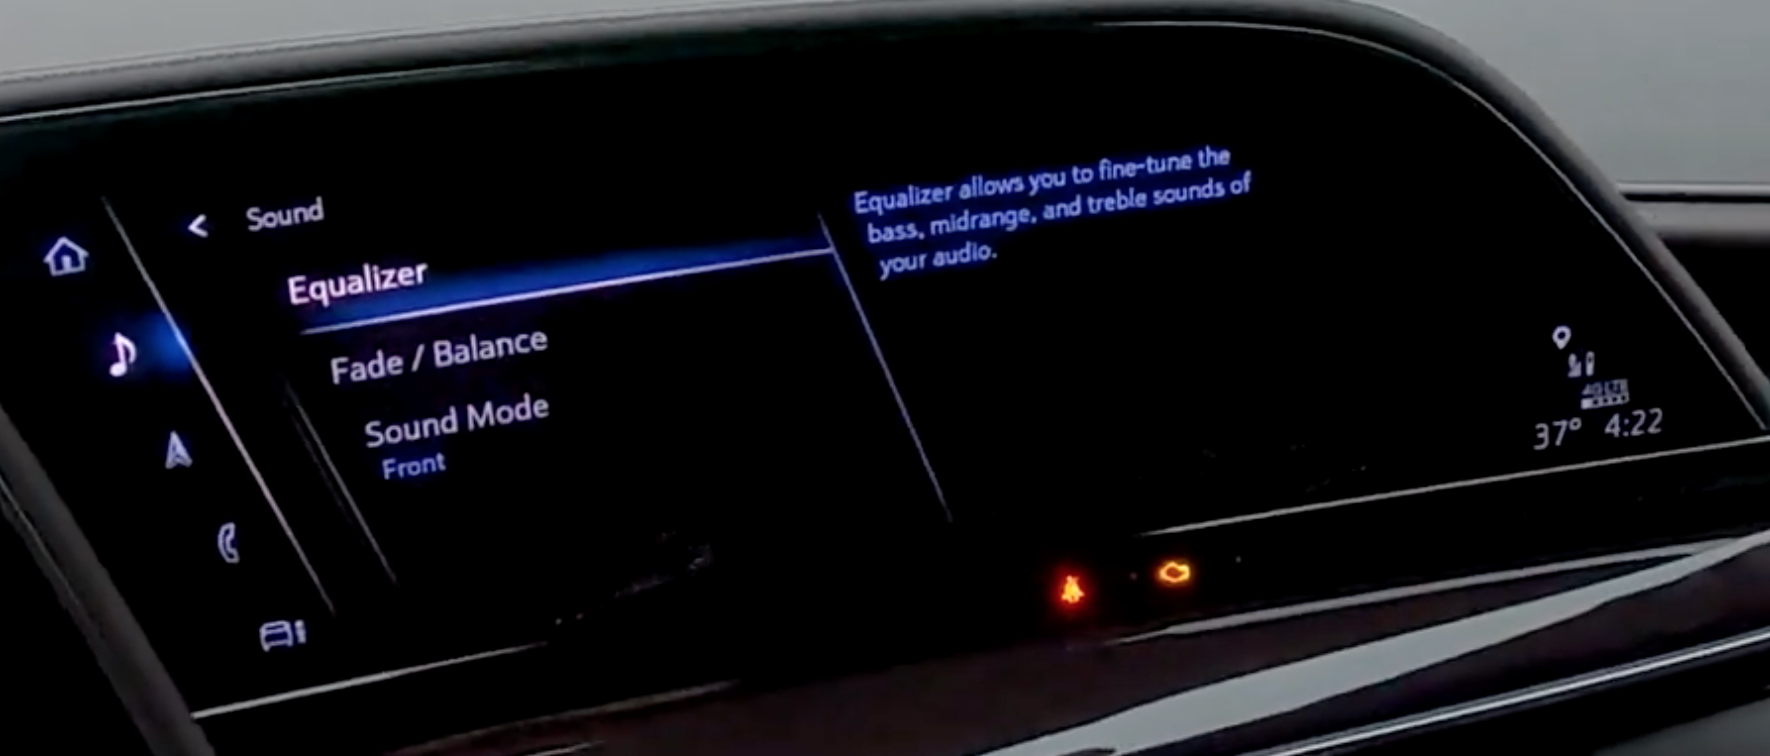 Media sounds settings for the equalizer